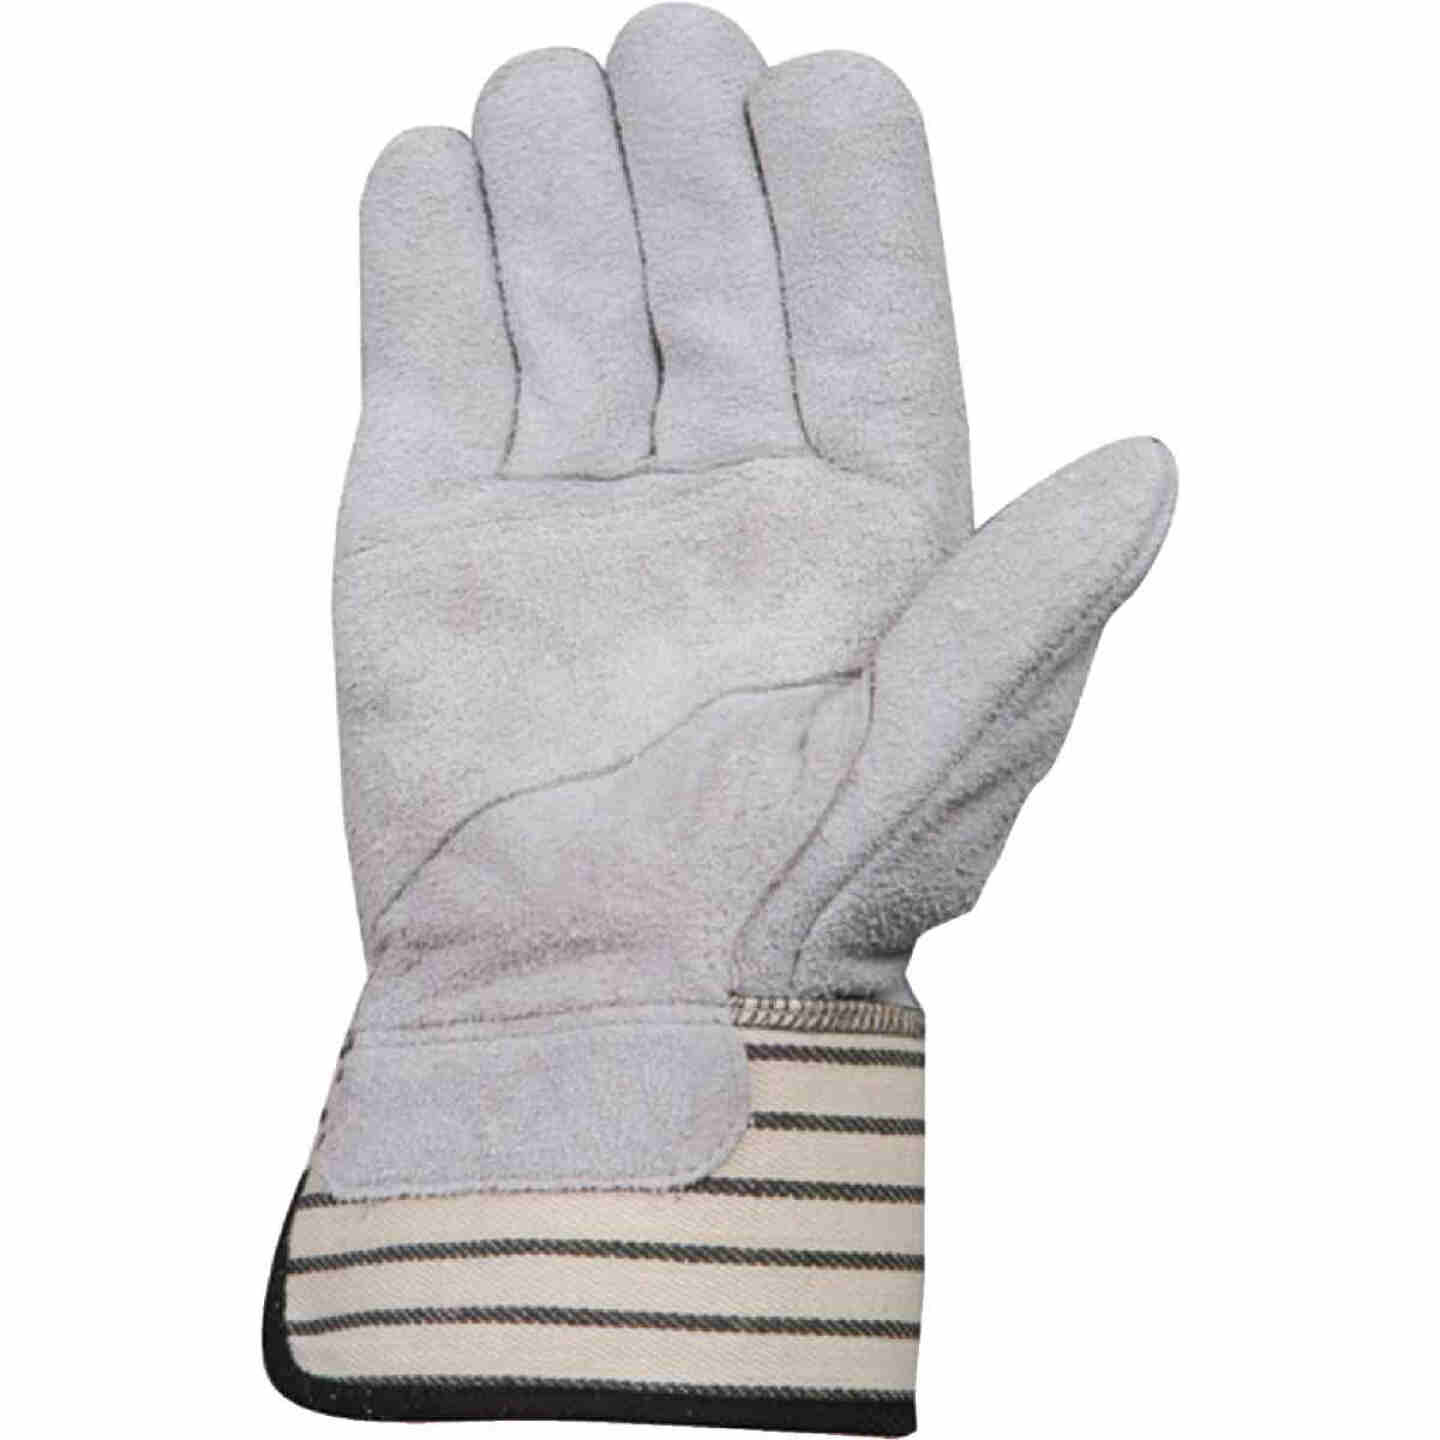 Wells Lamont Men's Large Suede Split Cowhide Leather Work Glove Image 2